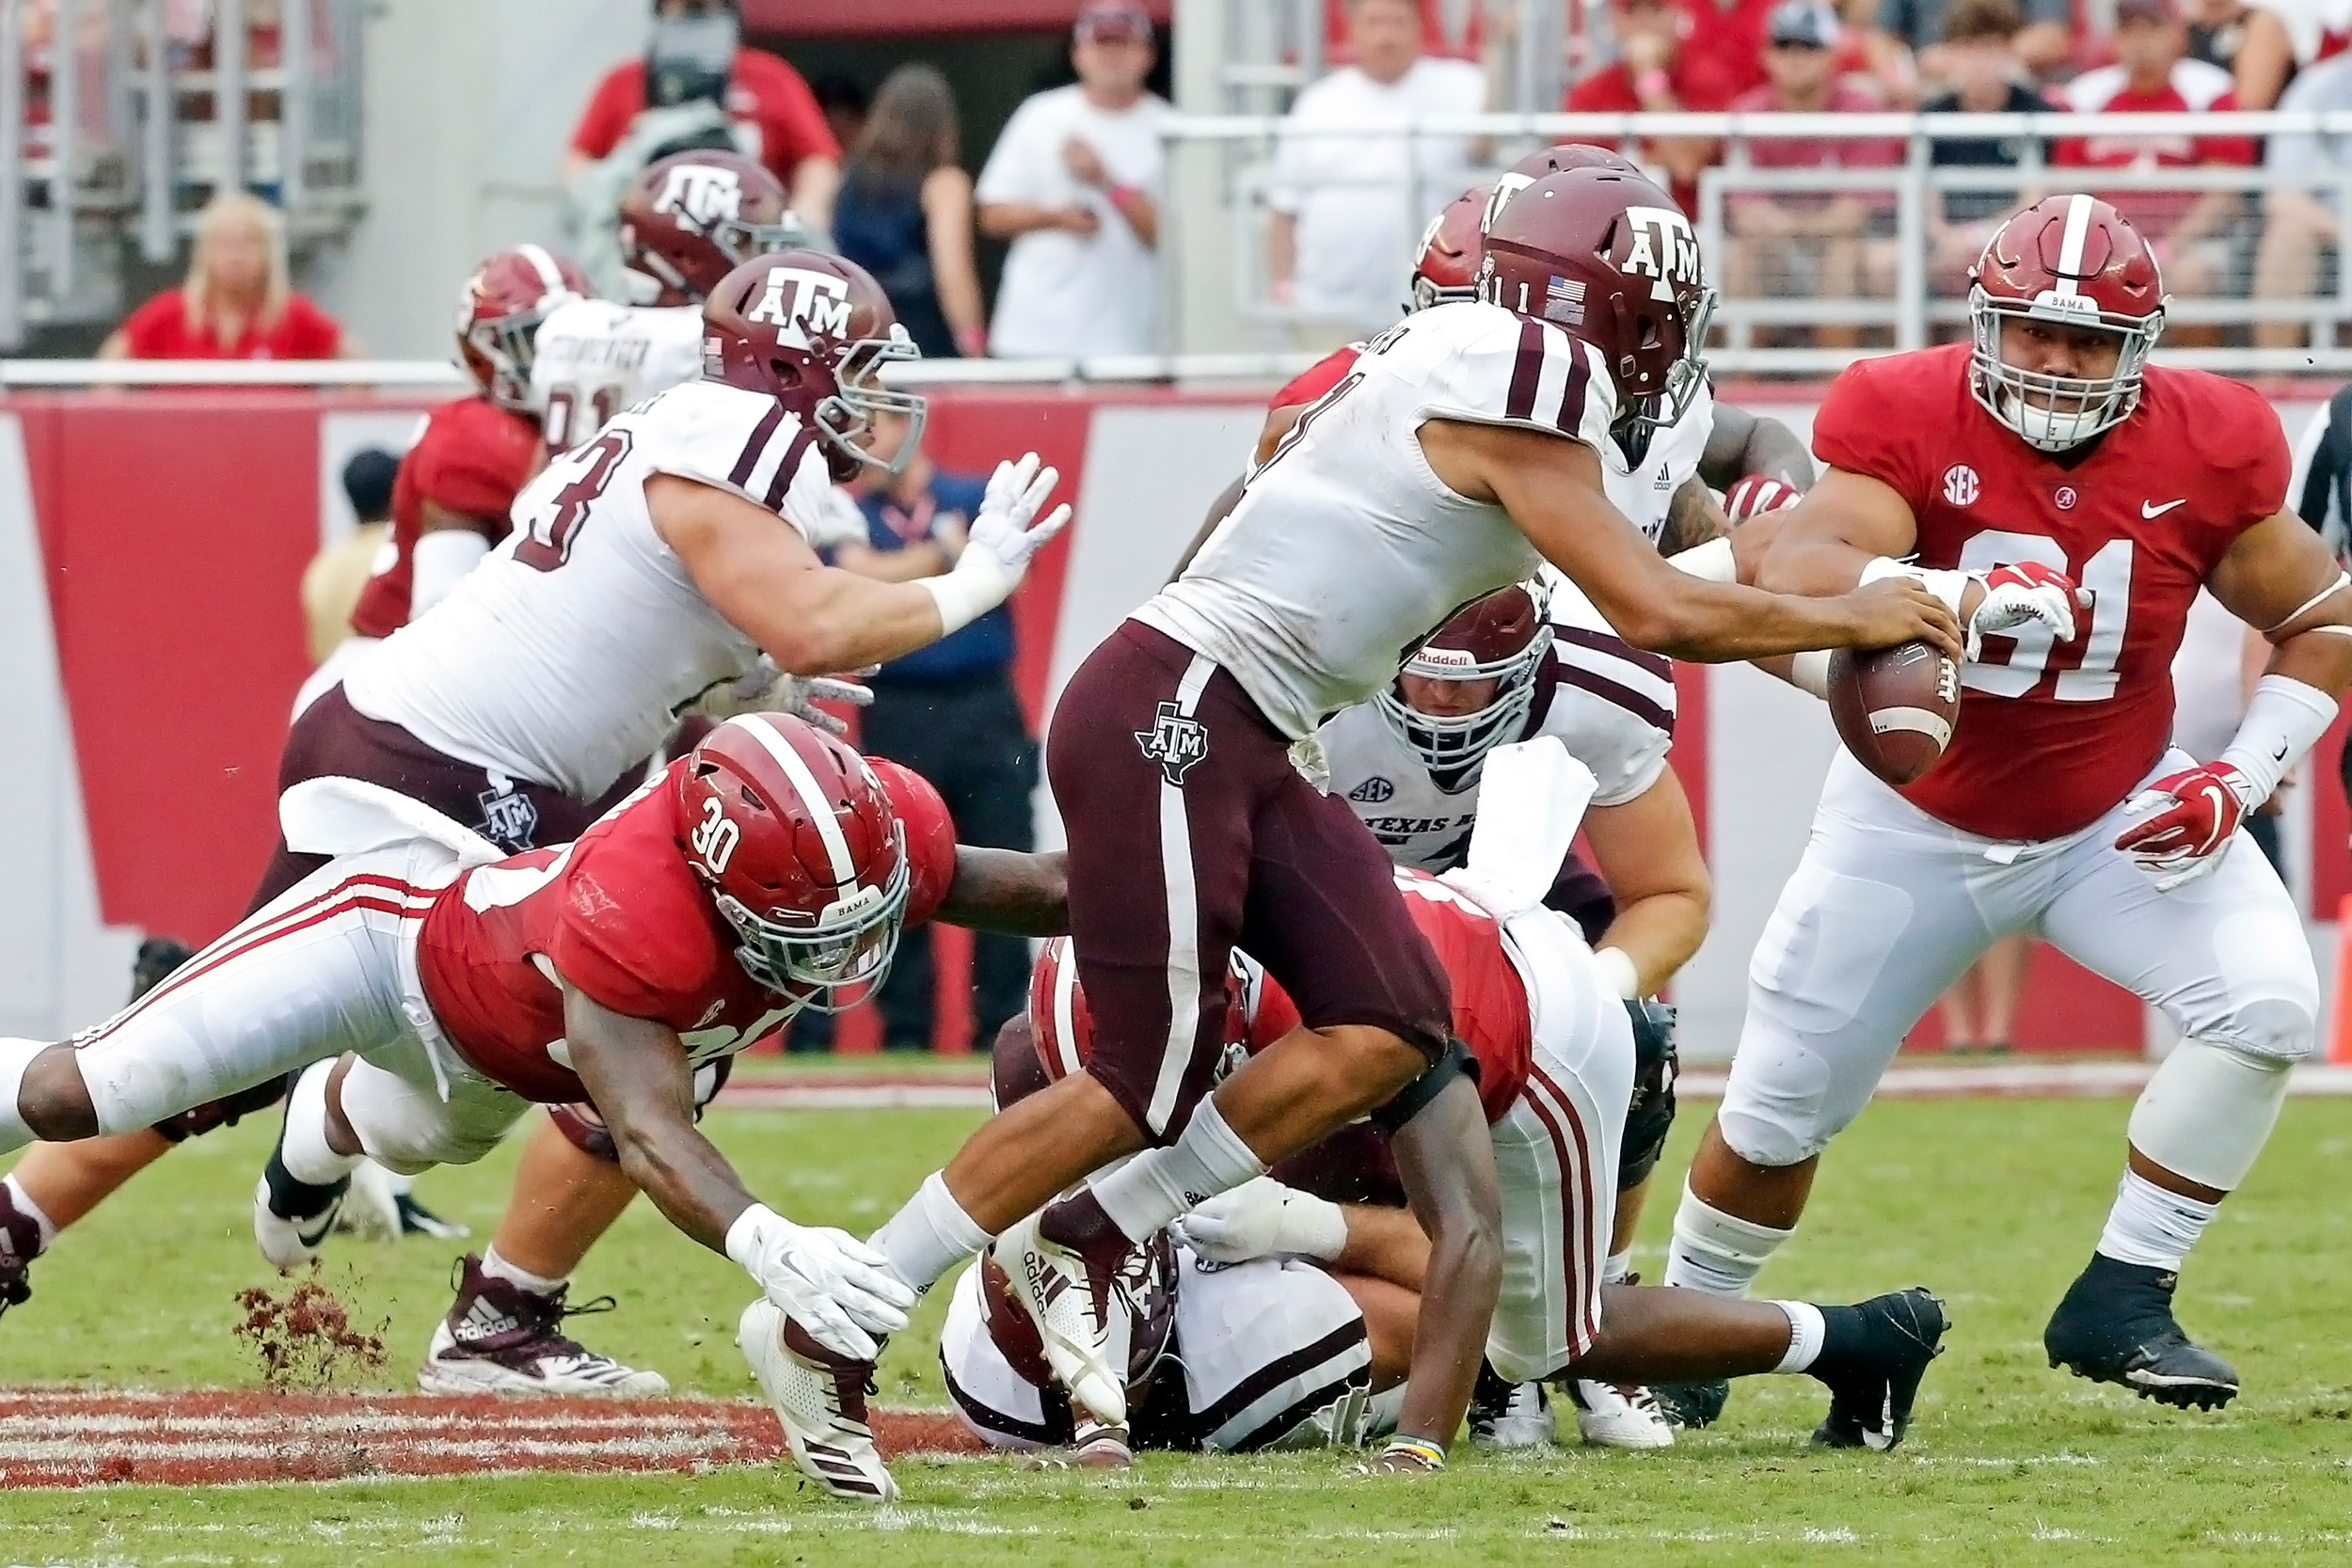 Alabama Crimson Tide linebacker Mack Wilson (30) sacks Texas A&M Aggies quarterback Kellen Mond (11) during the game with against the Texas A&M Aggies at Bryant-Denny Stadium.  Jason Clark / Daily Mountain Eagle